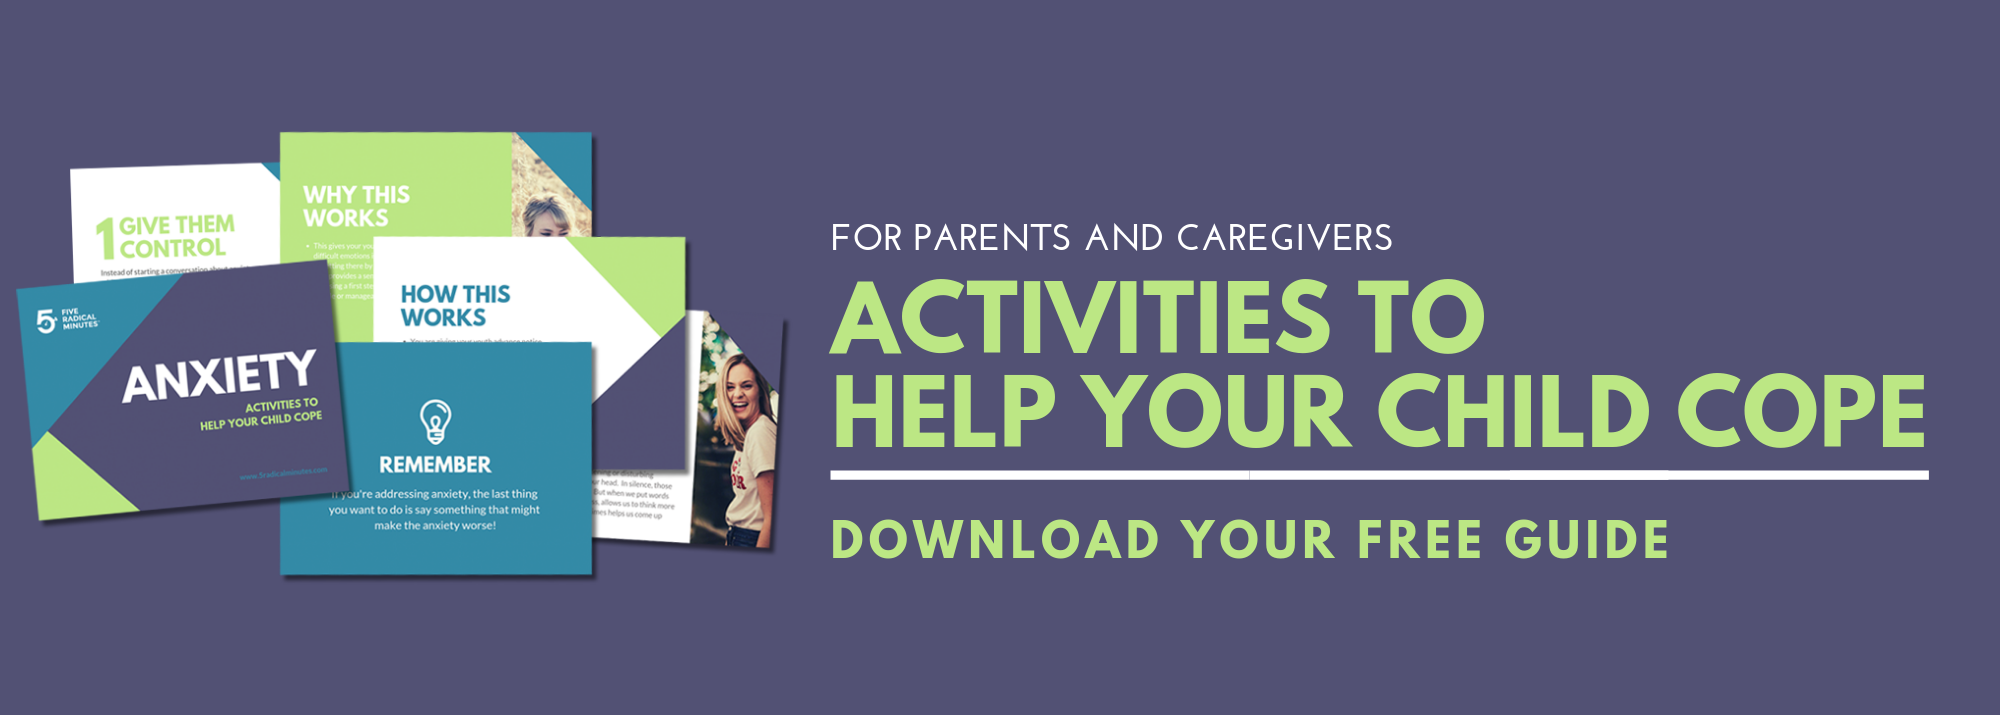 Activities to help your child cope with anxiety